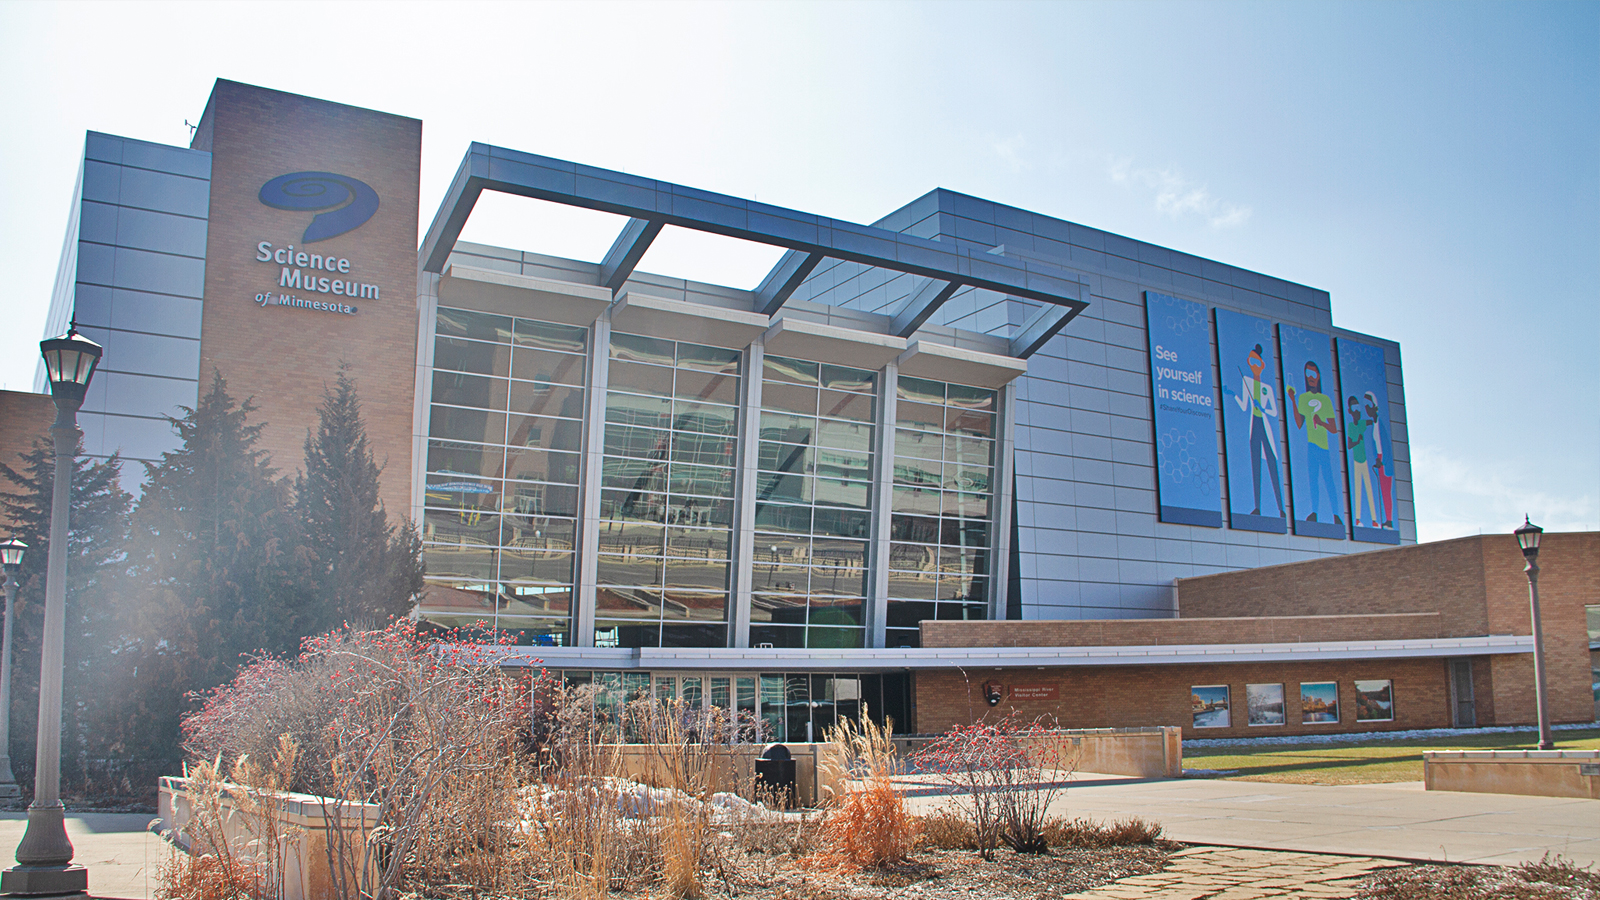 Exterior of the Science Museum of Minnesota